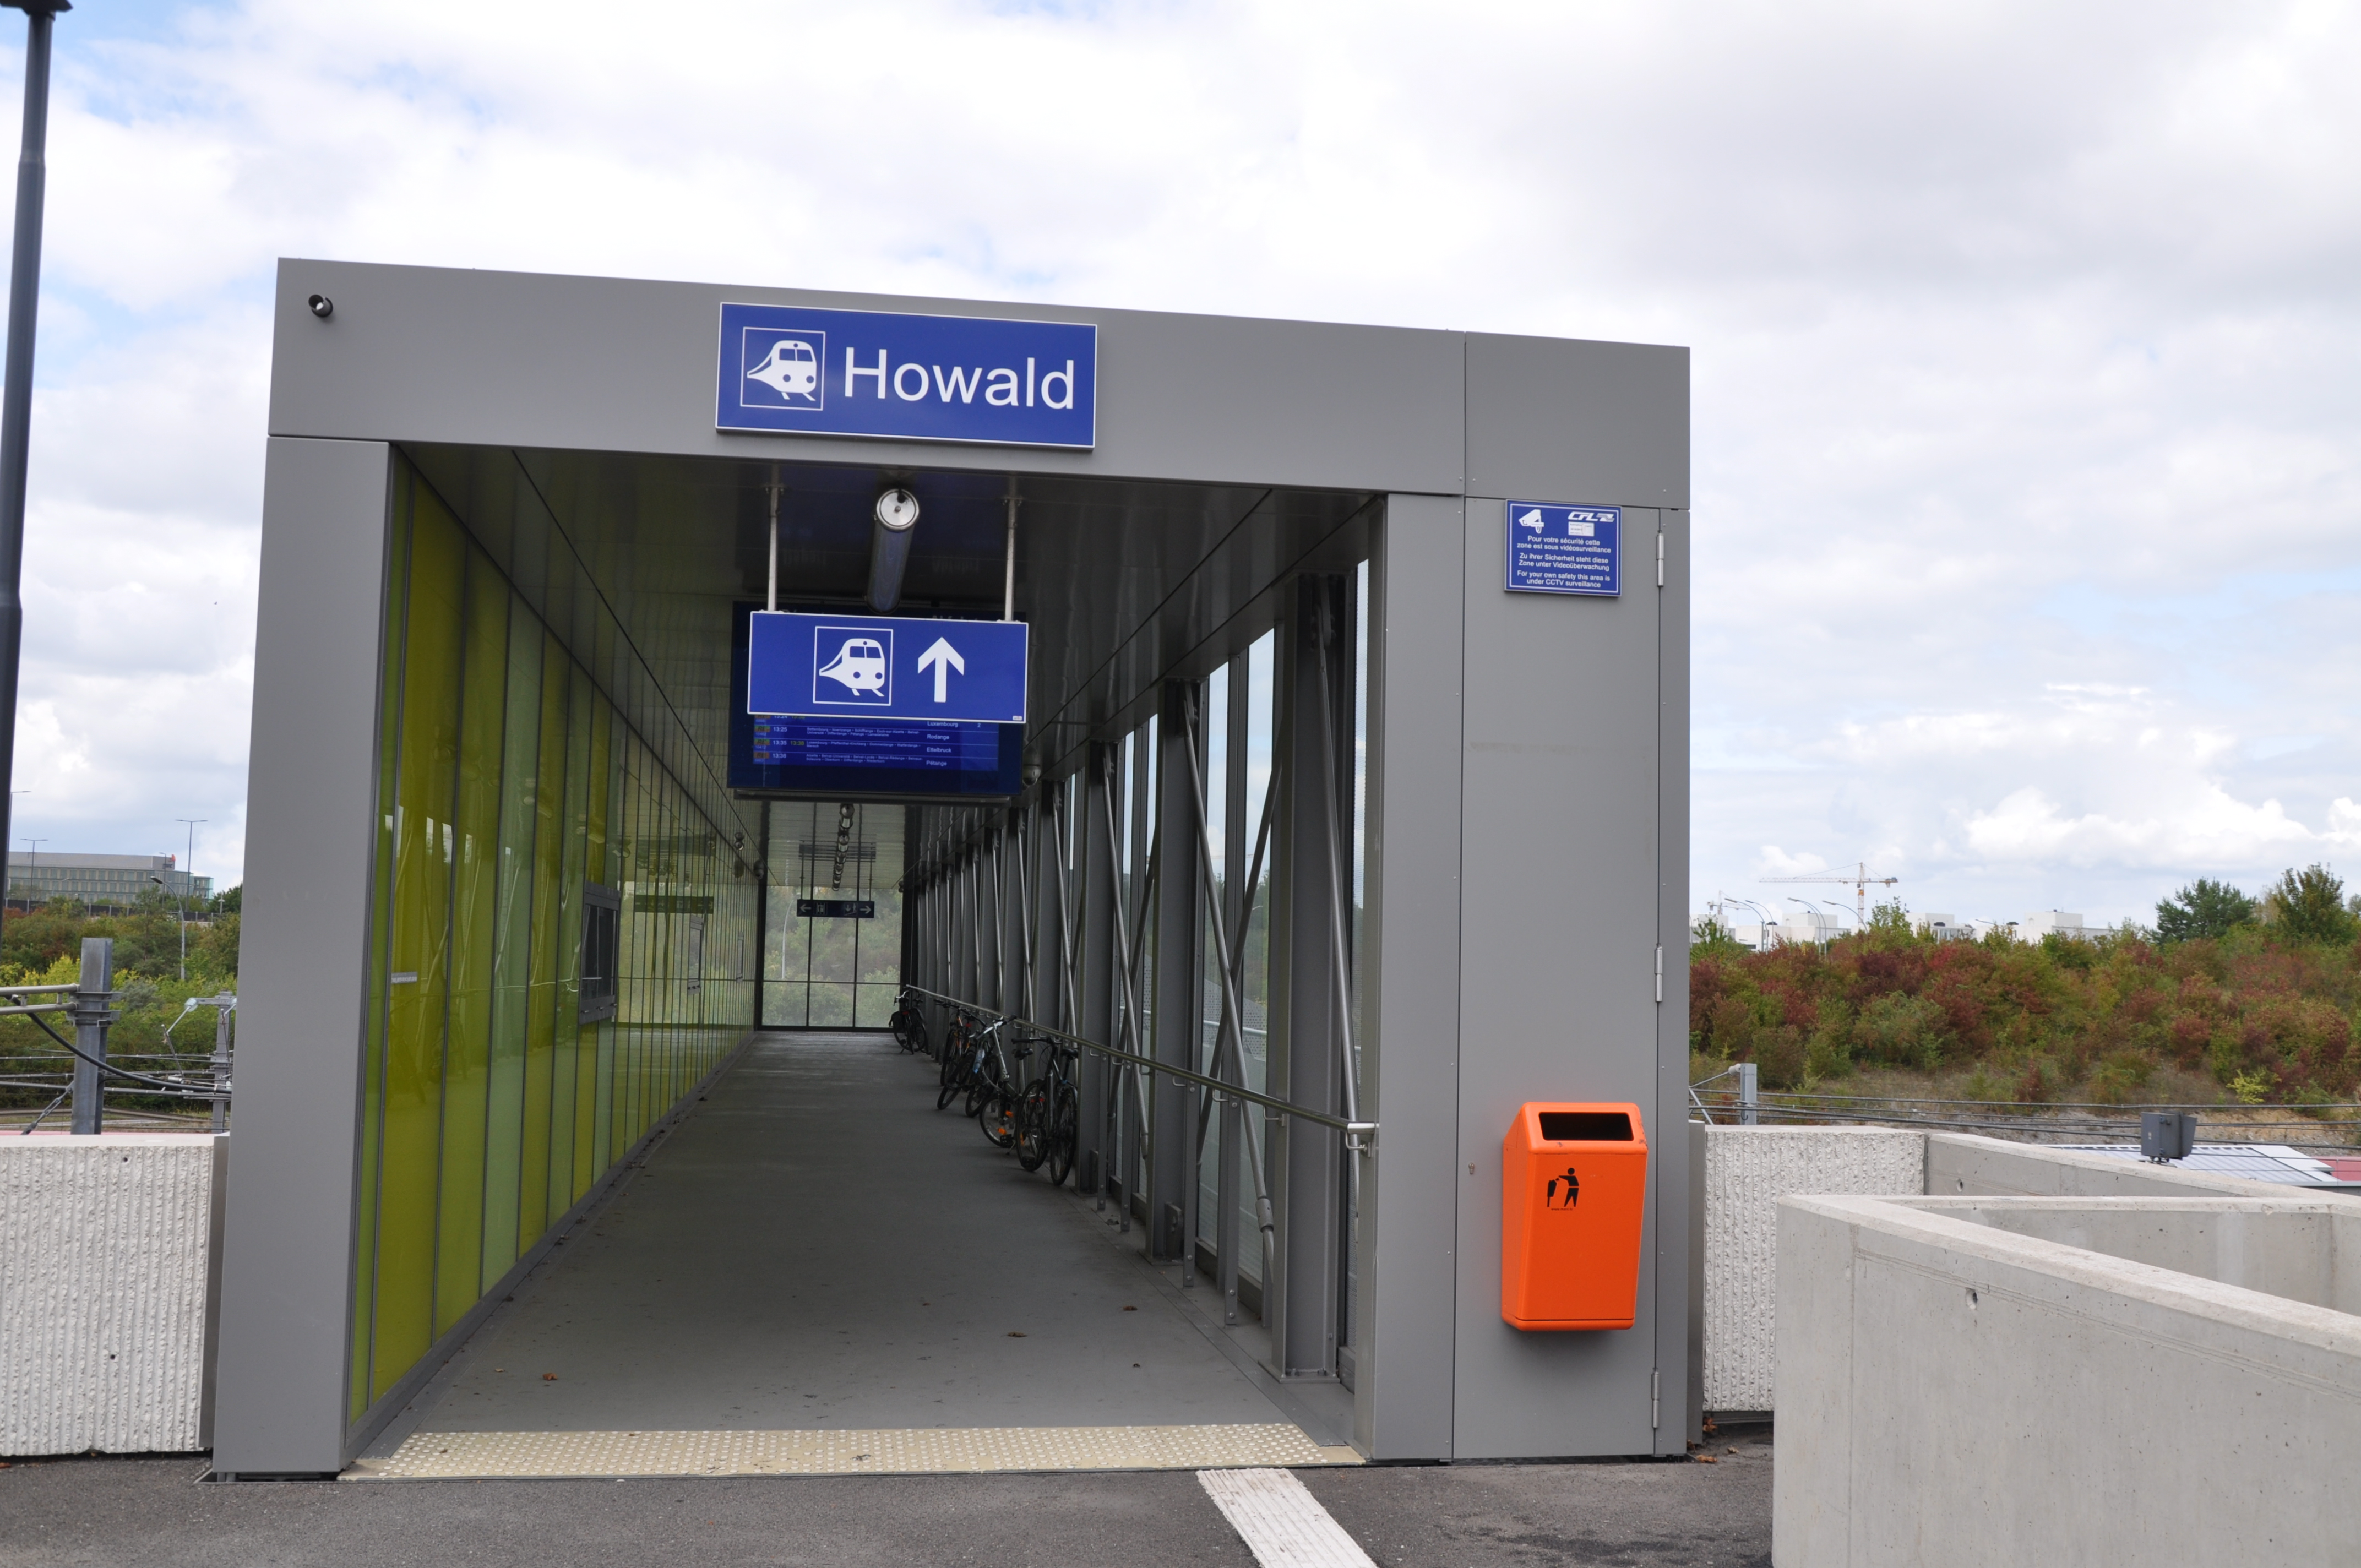 Train station of Howald